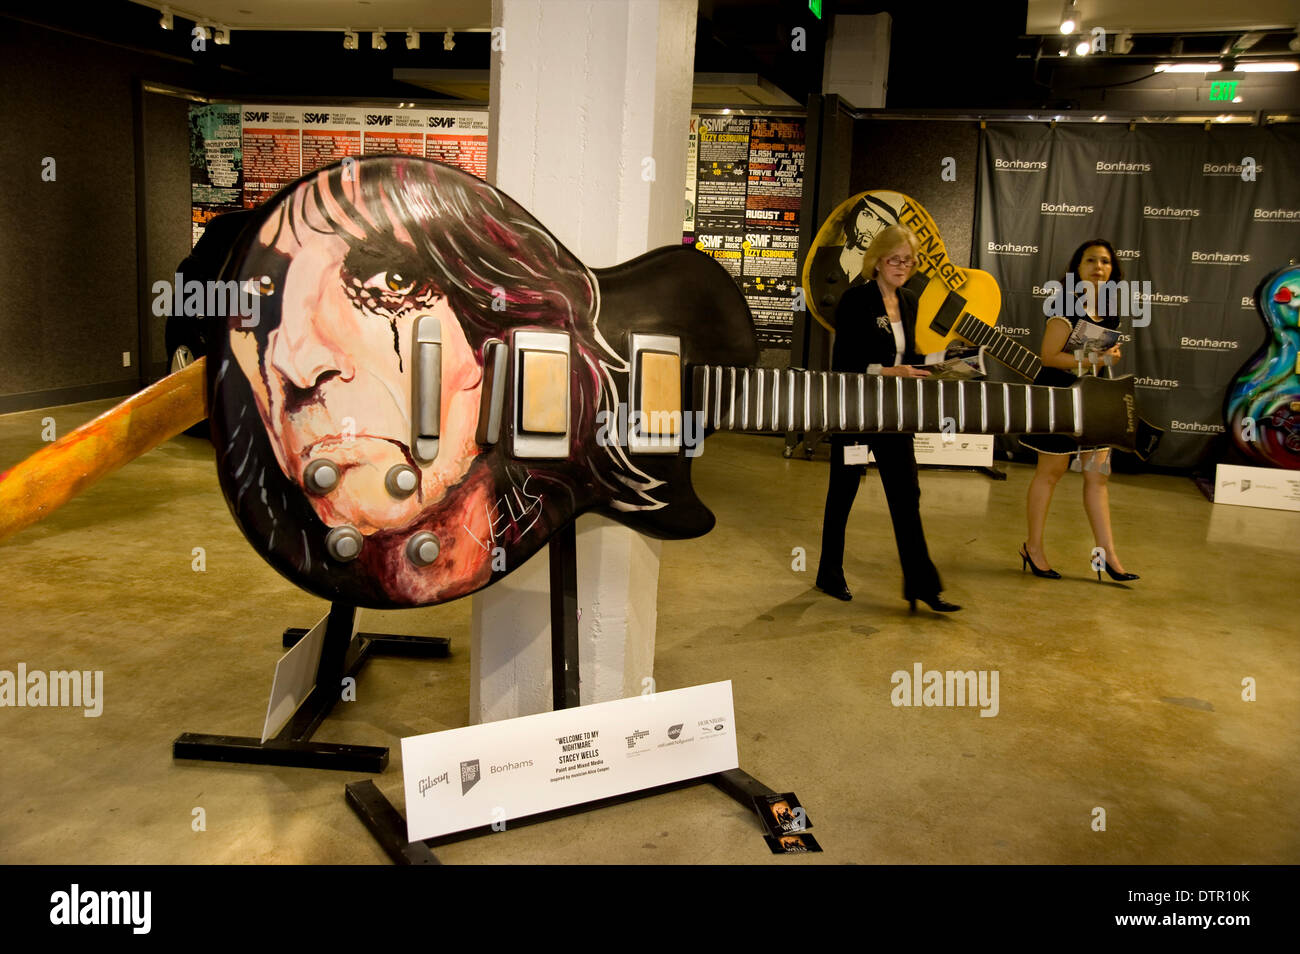 Hollywood, USA. 21st Feb, 2014. Gibson art guitar project contributor Stacey Wells' guitar inspired by Alice Cooper on display at Bonham's in Hollywood where it was being auctioned off for charity. Credit:  Robert Landau/Alamy Live News - Stock Image